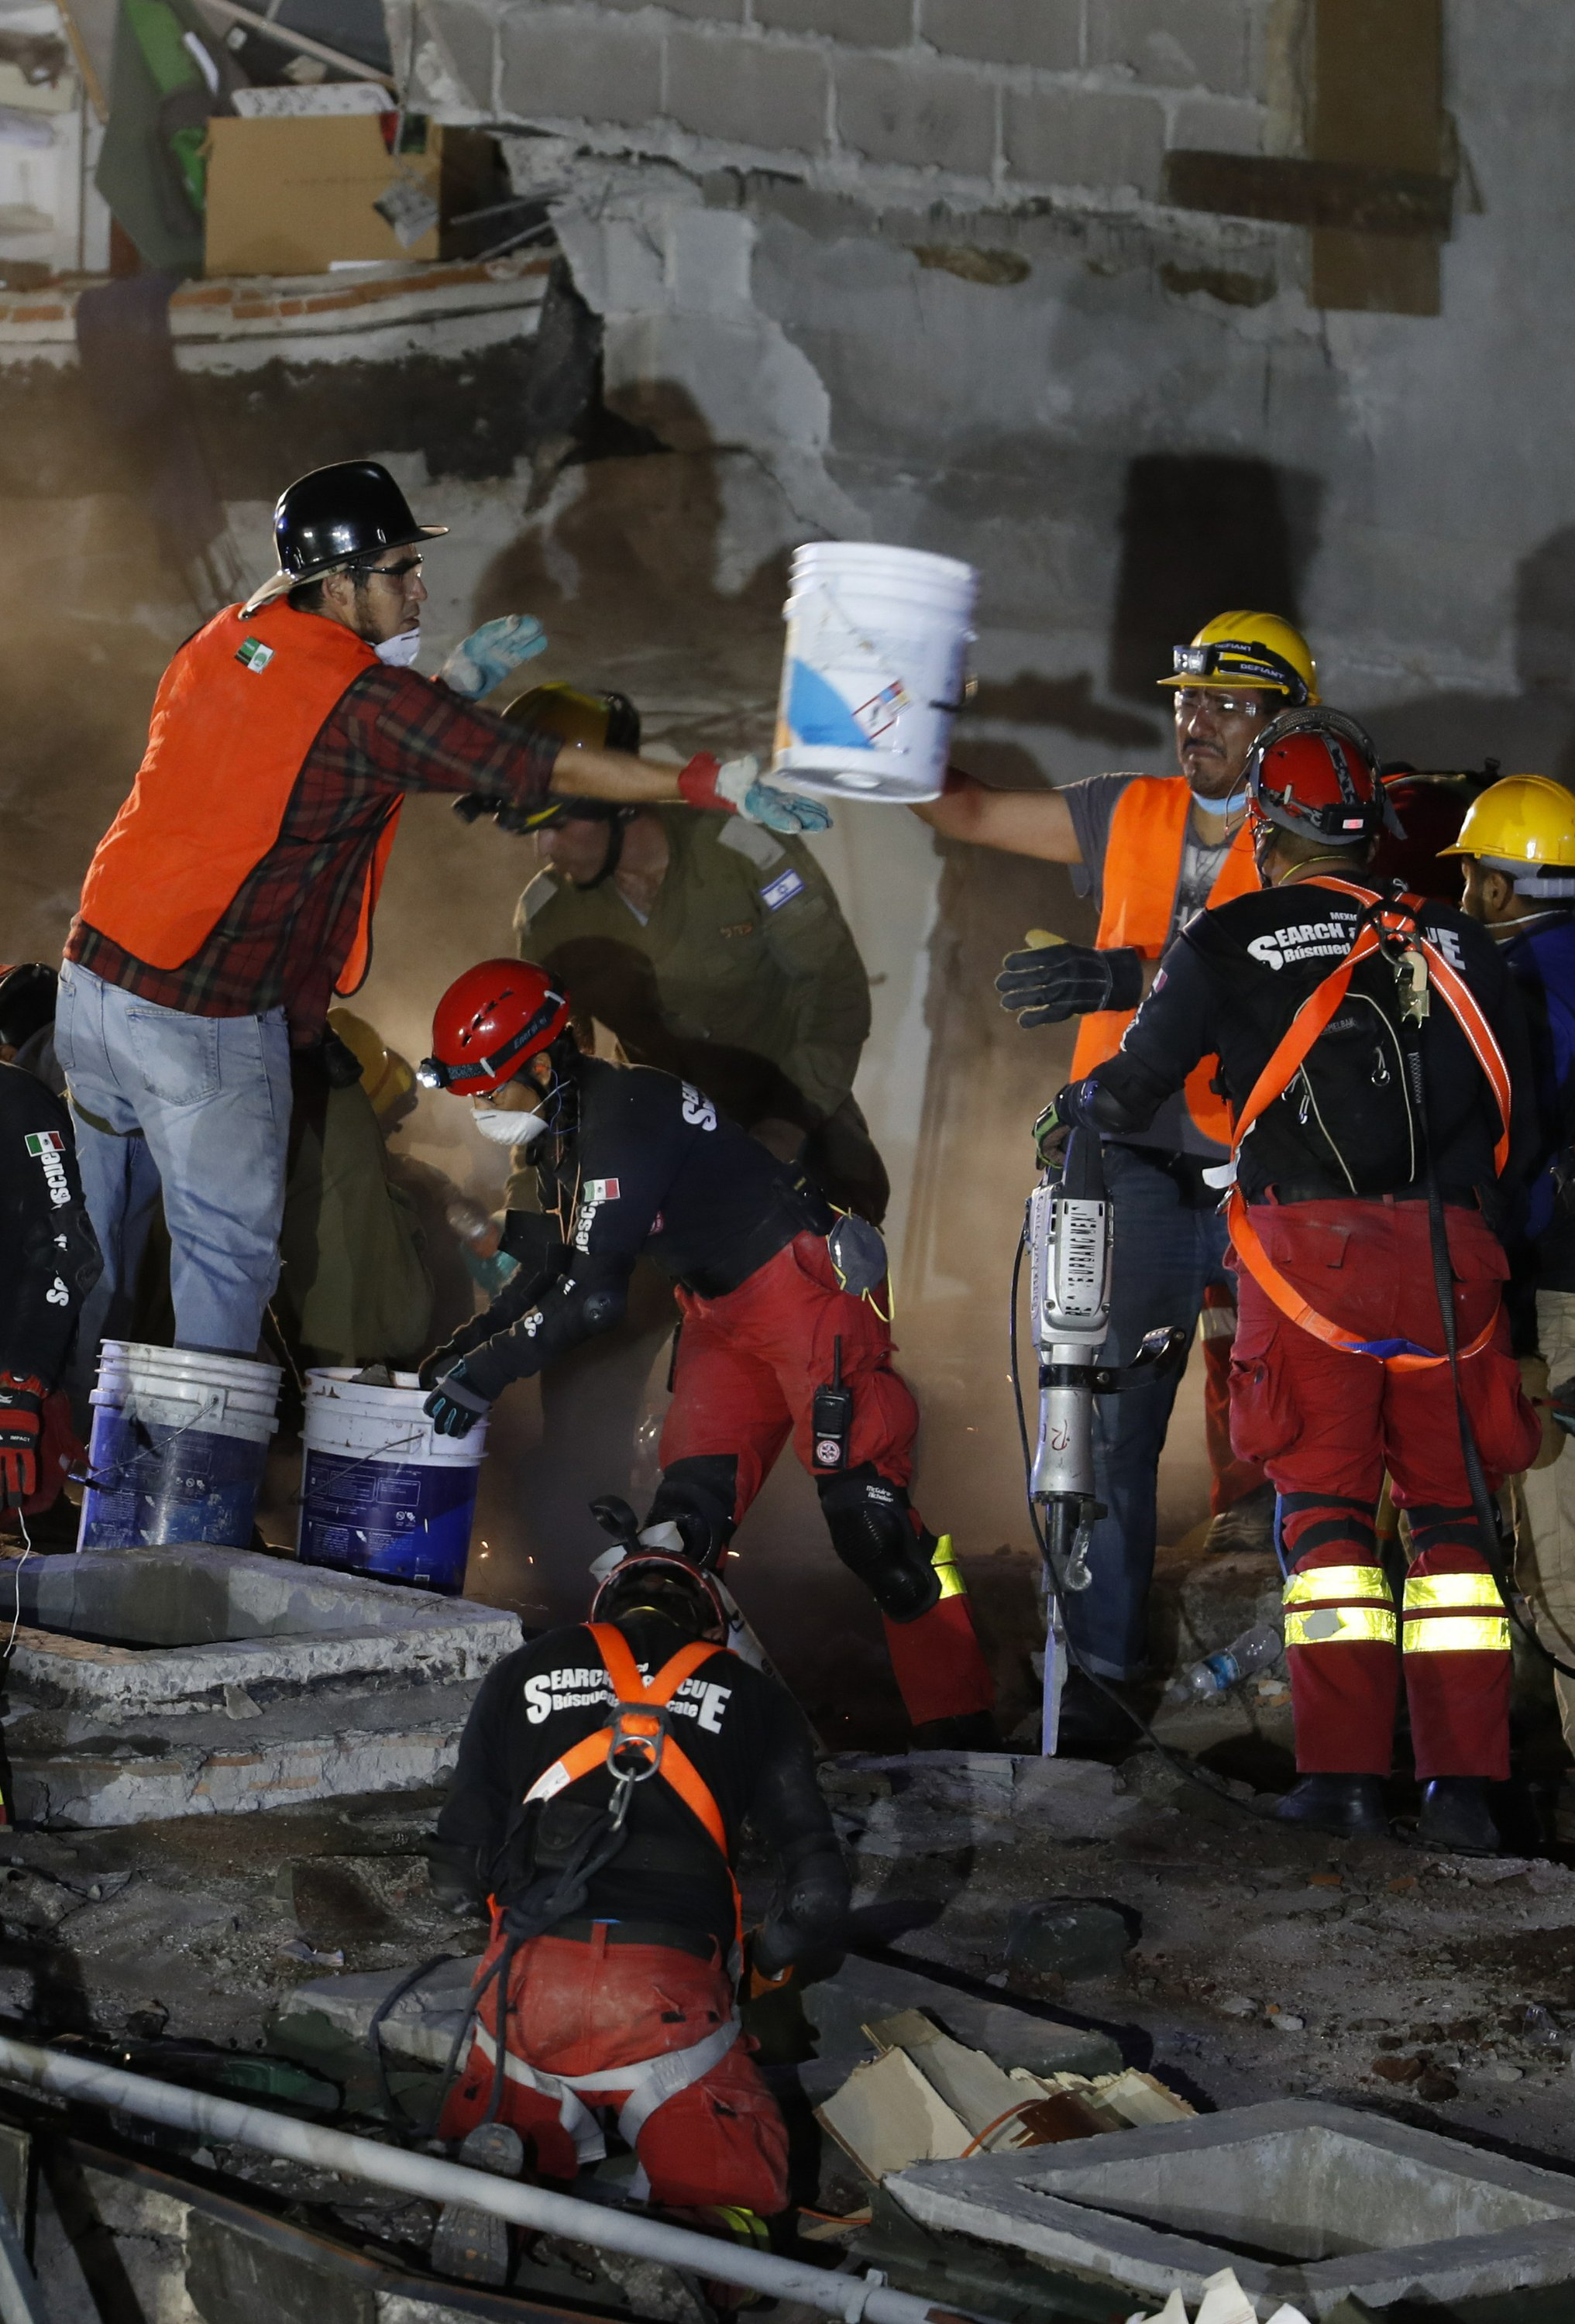 The Latest: Chopper carrying aid crashes in Mexico, 1 dead